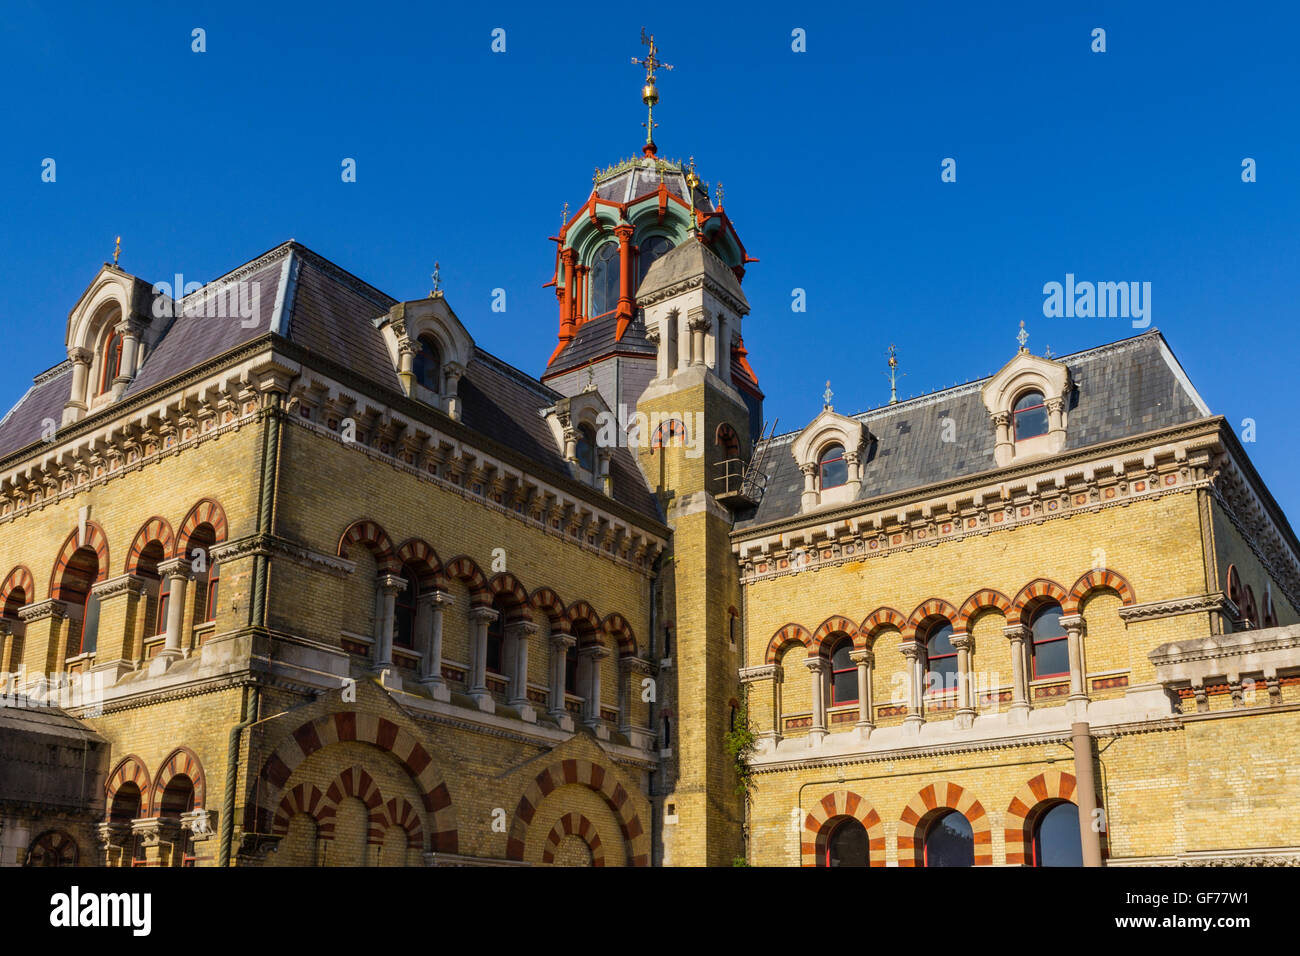 Abbey Mills Pumping Station, London, England, United Kingdom - Stock Image